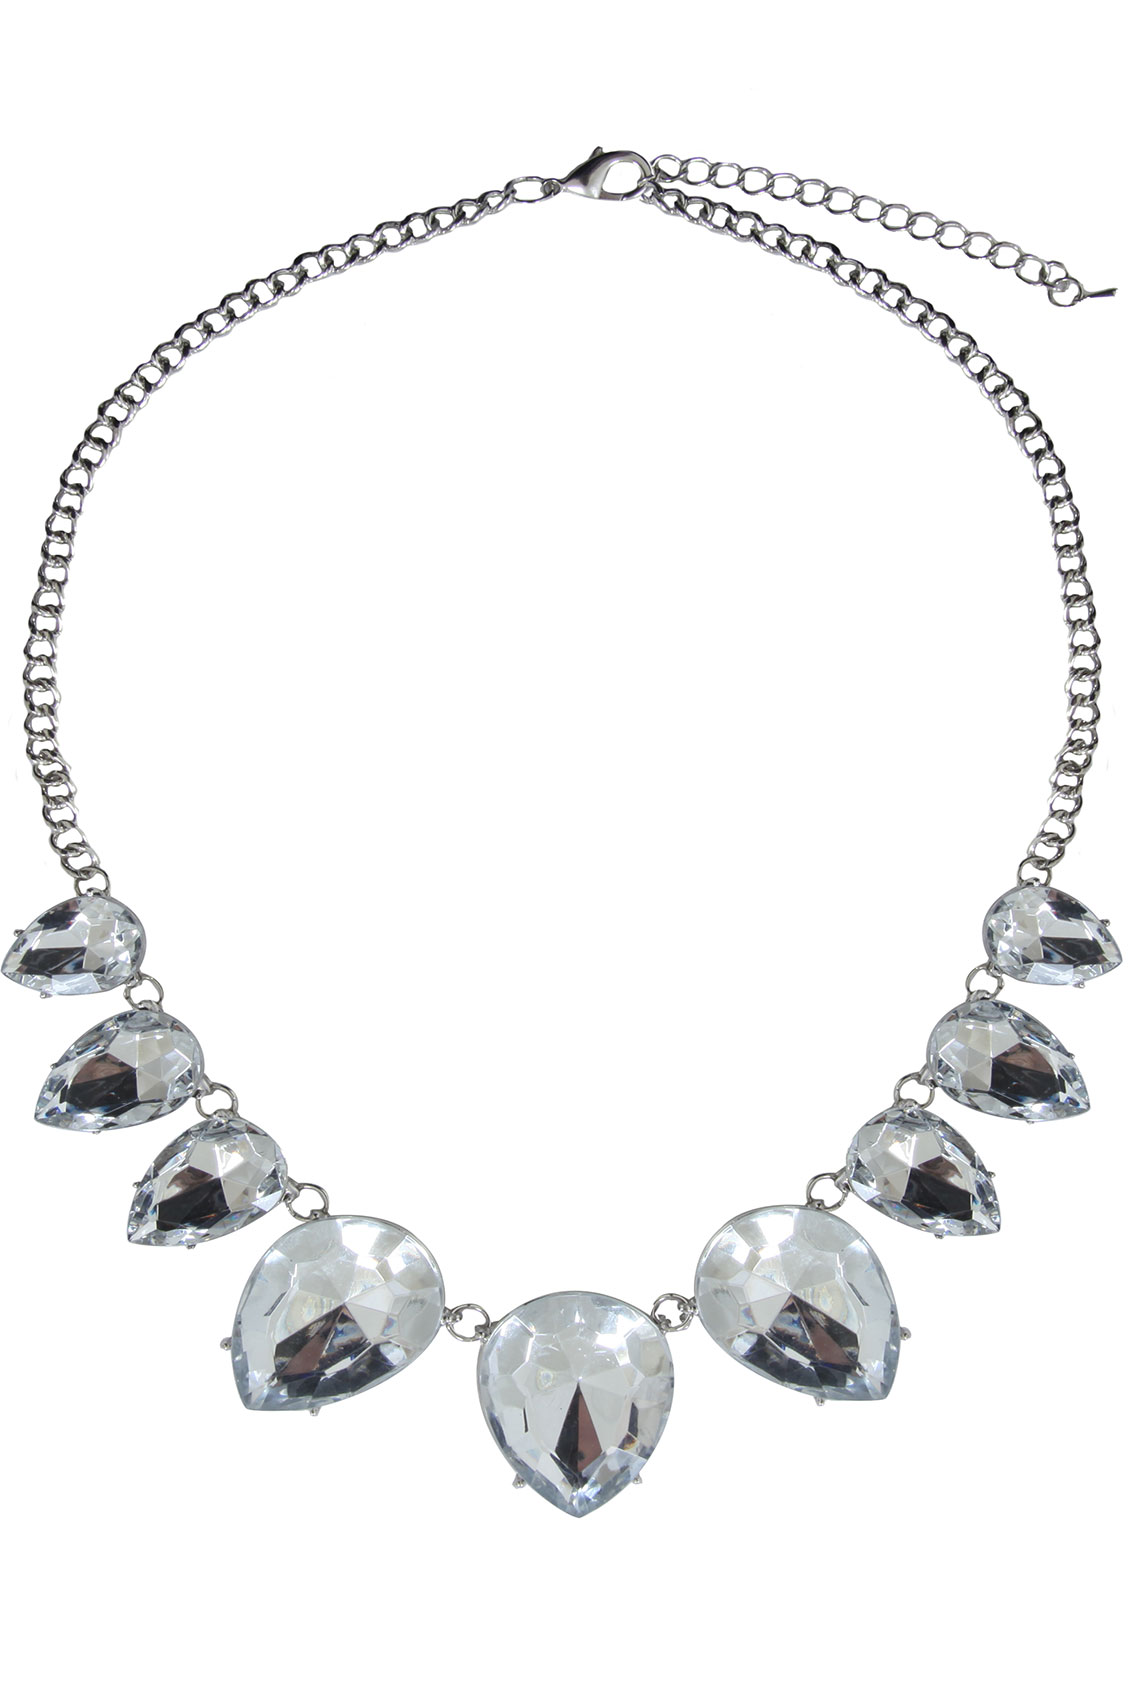 Silver Crystal Stone Statement Necklace